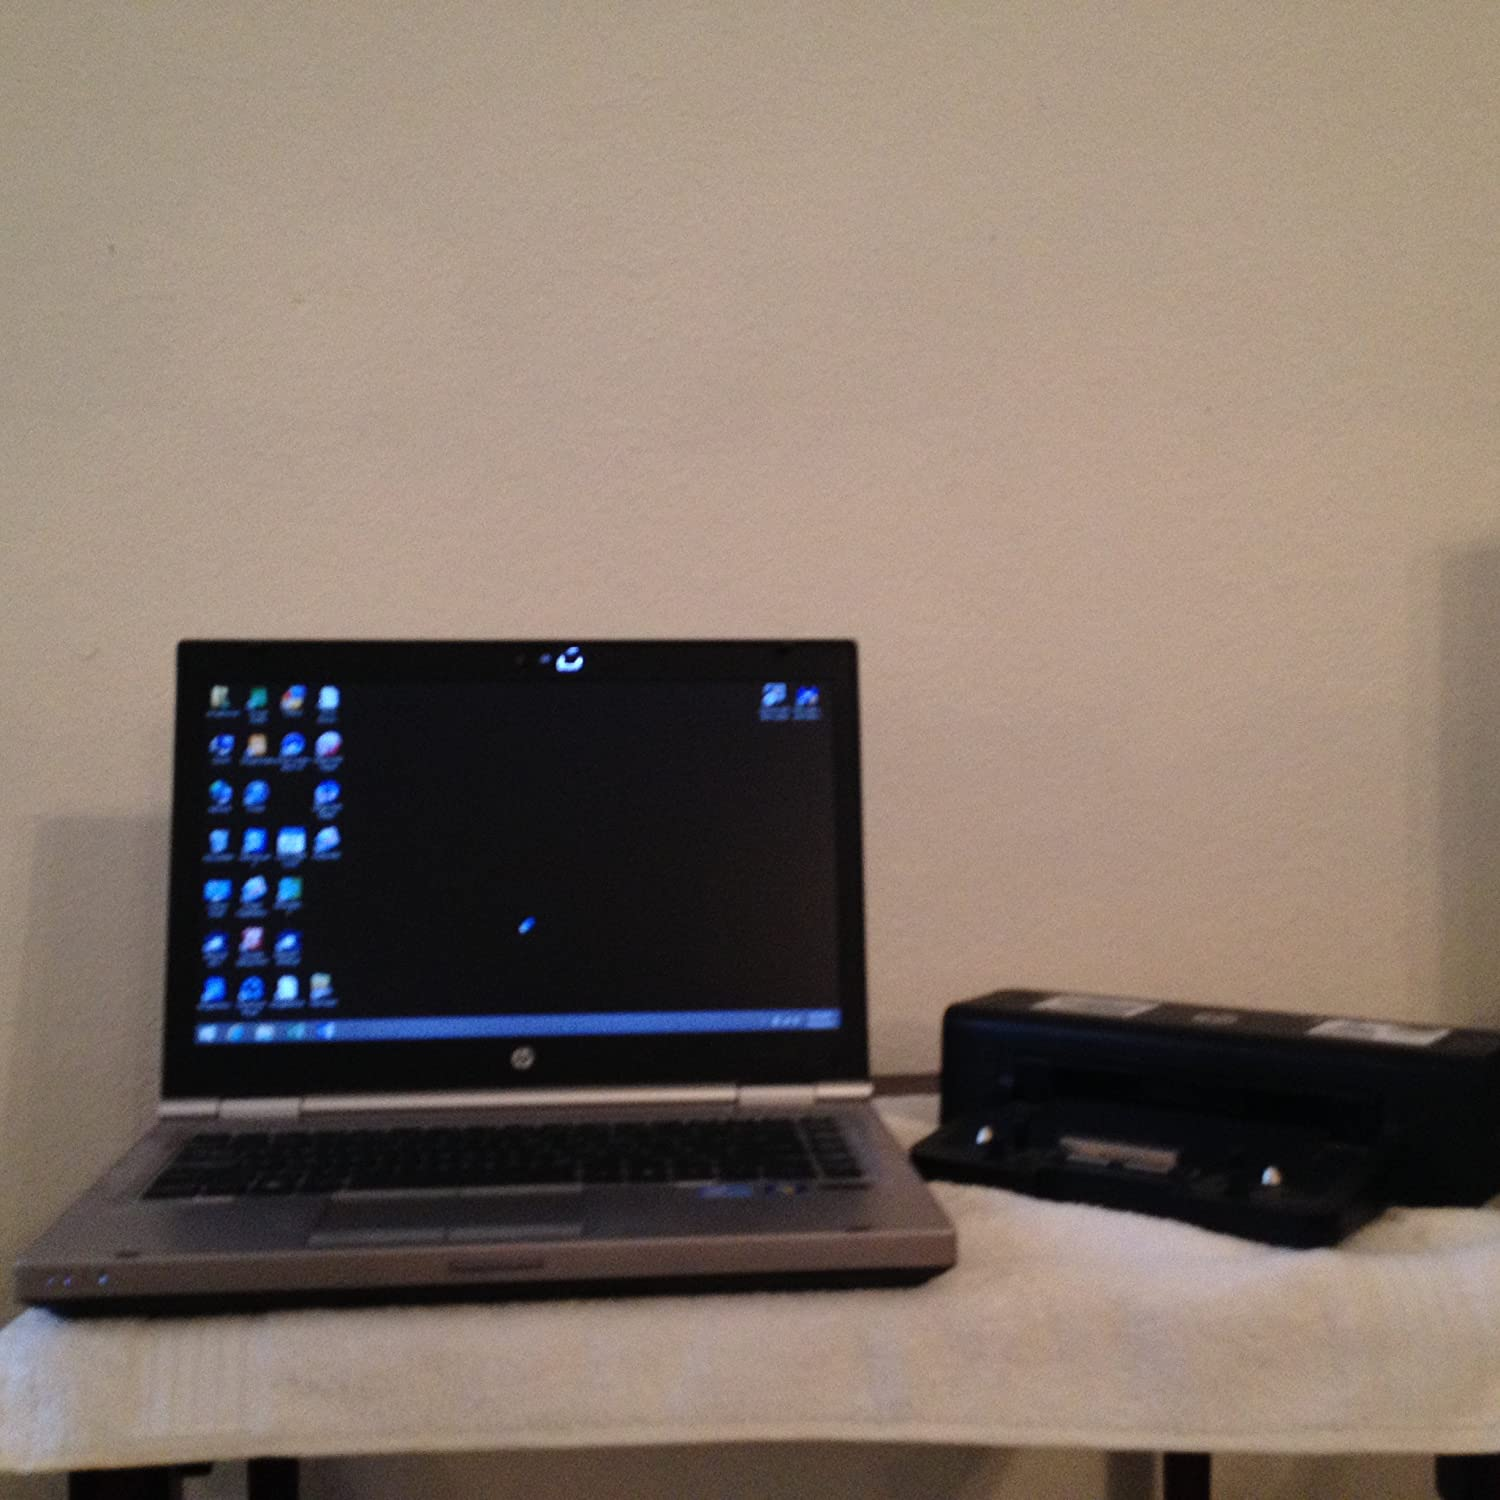 "HP 14"" EliteBook, Intel Core i5-2450M 2.5GHz, 4GB DDR3, 500GB HDD, DVDRW, Windows 7 Pro Notebook"